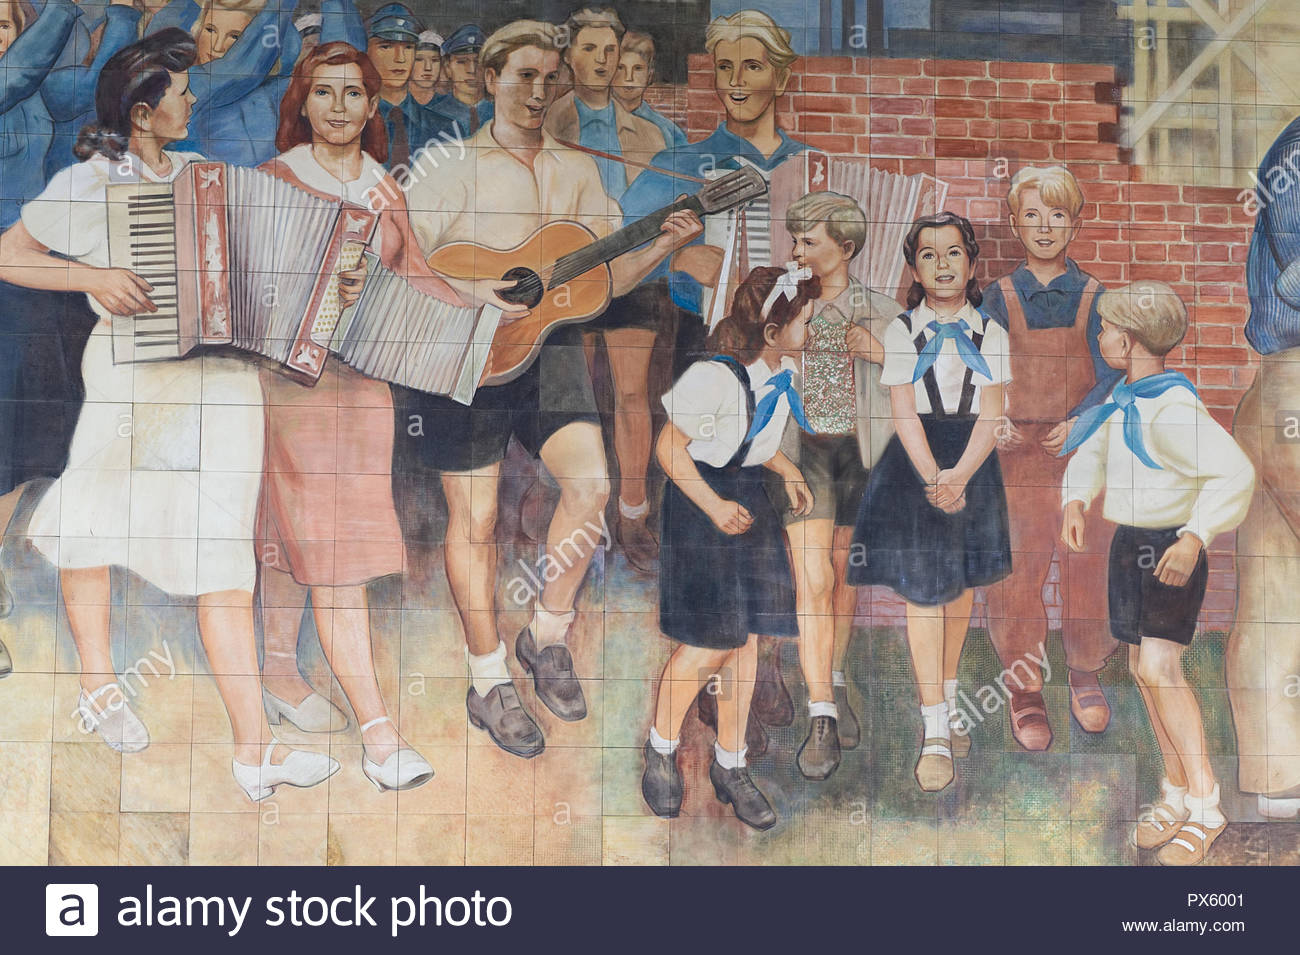 sound of music mosaic Berlin Germany - Stock Image